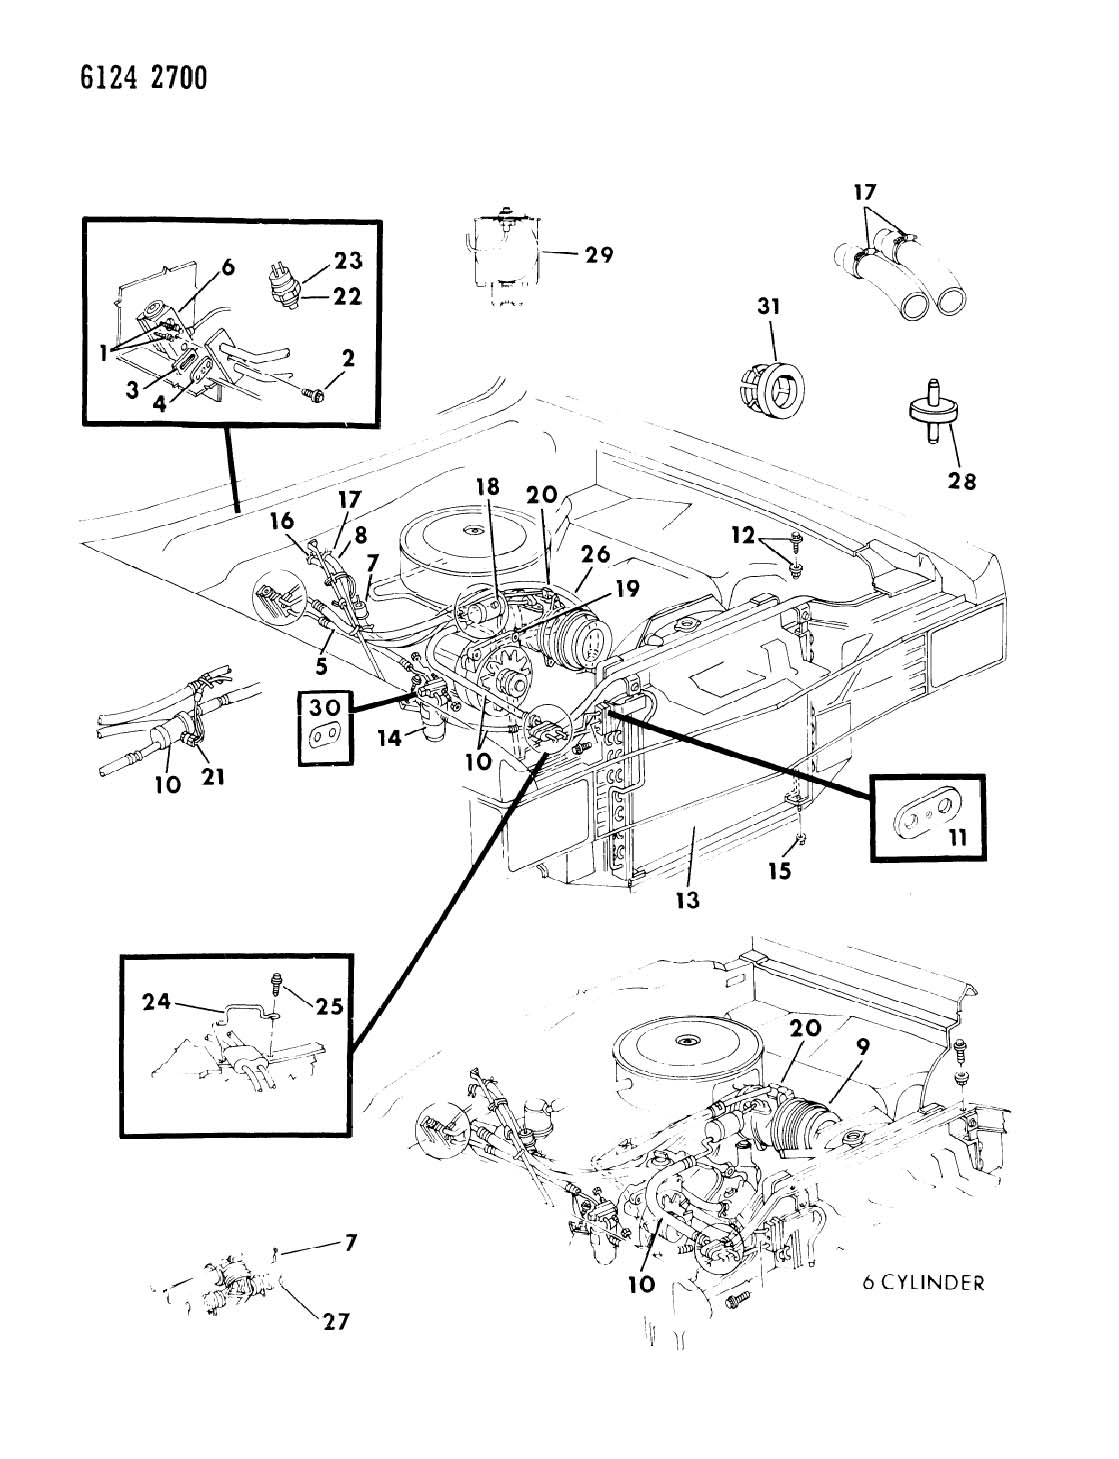 1979 ezgo golf cart wiring diagram 1979 discover your wiring wiring diagram